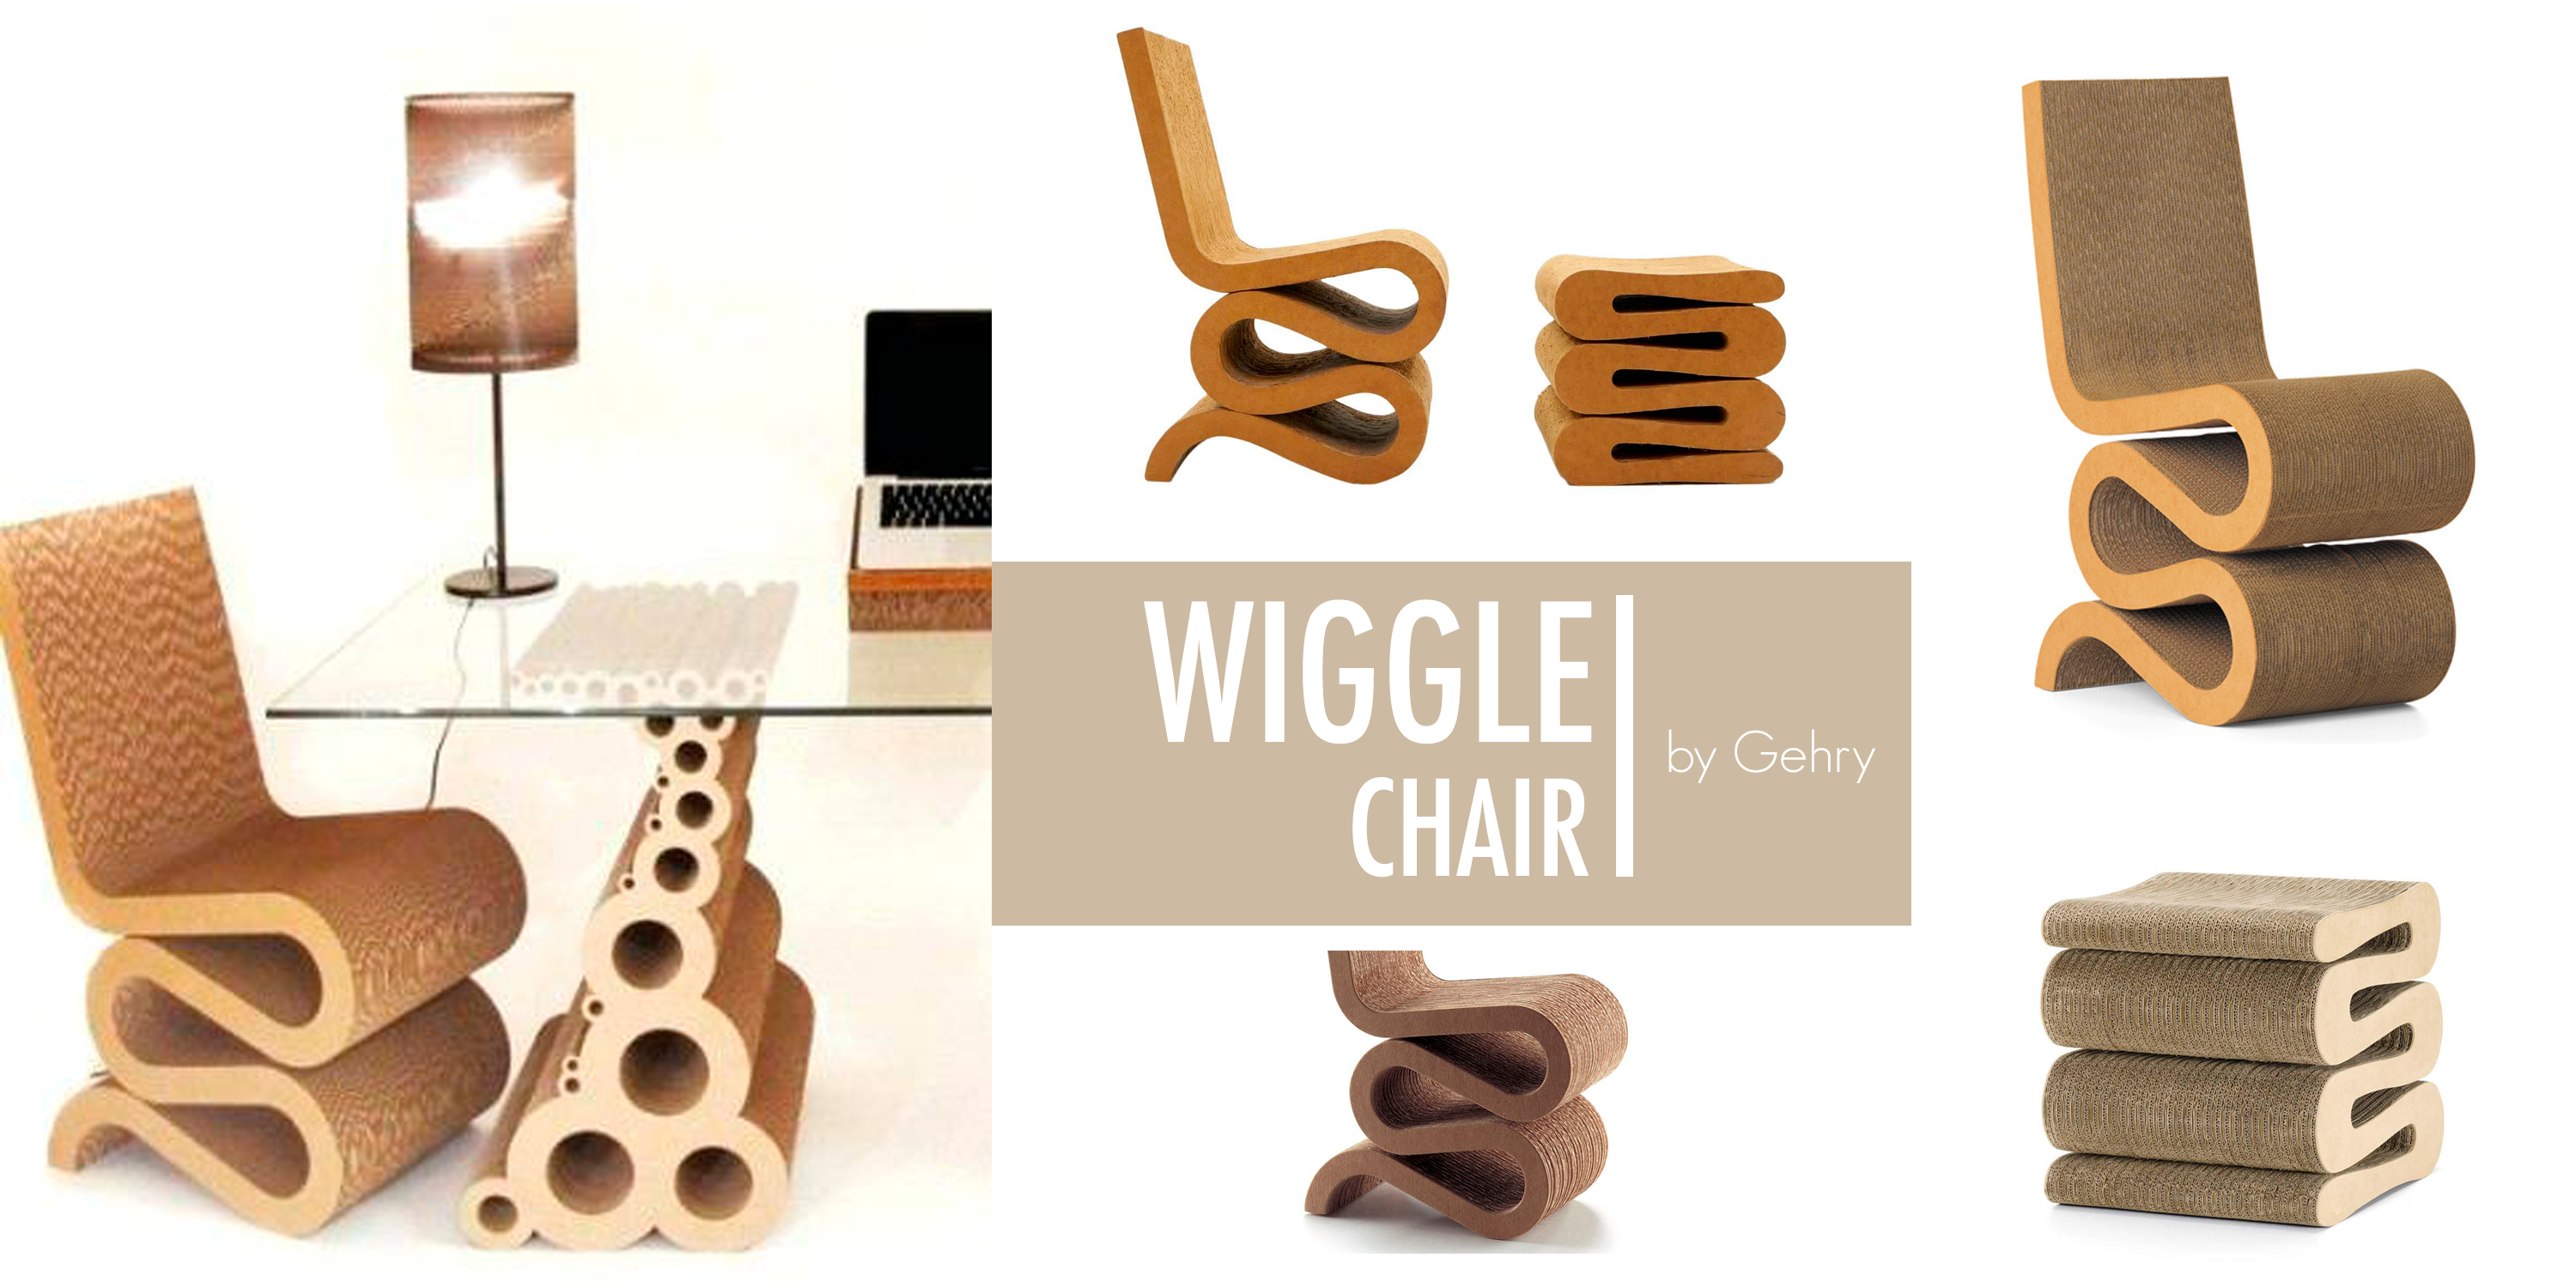 ``Wiggle Chair`` by Gehry